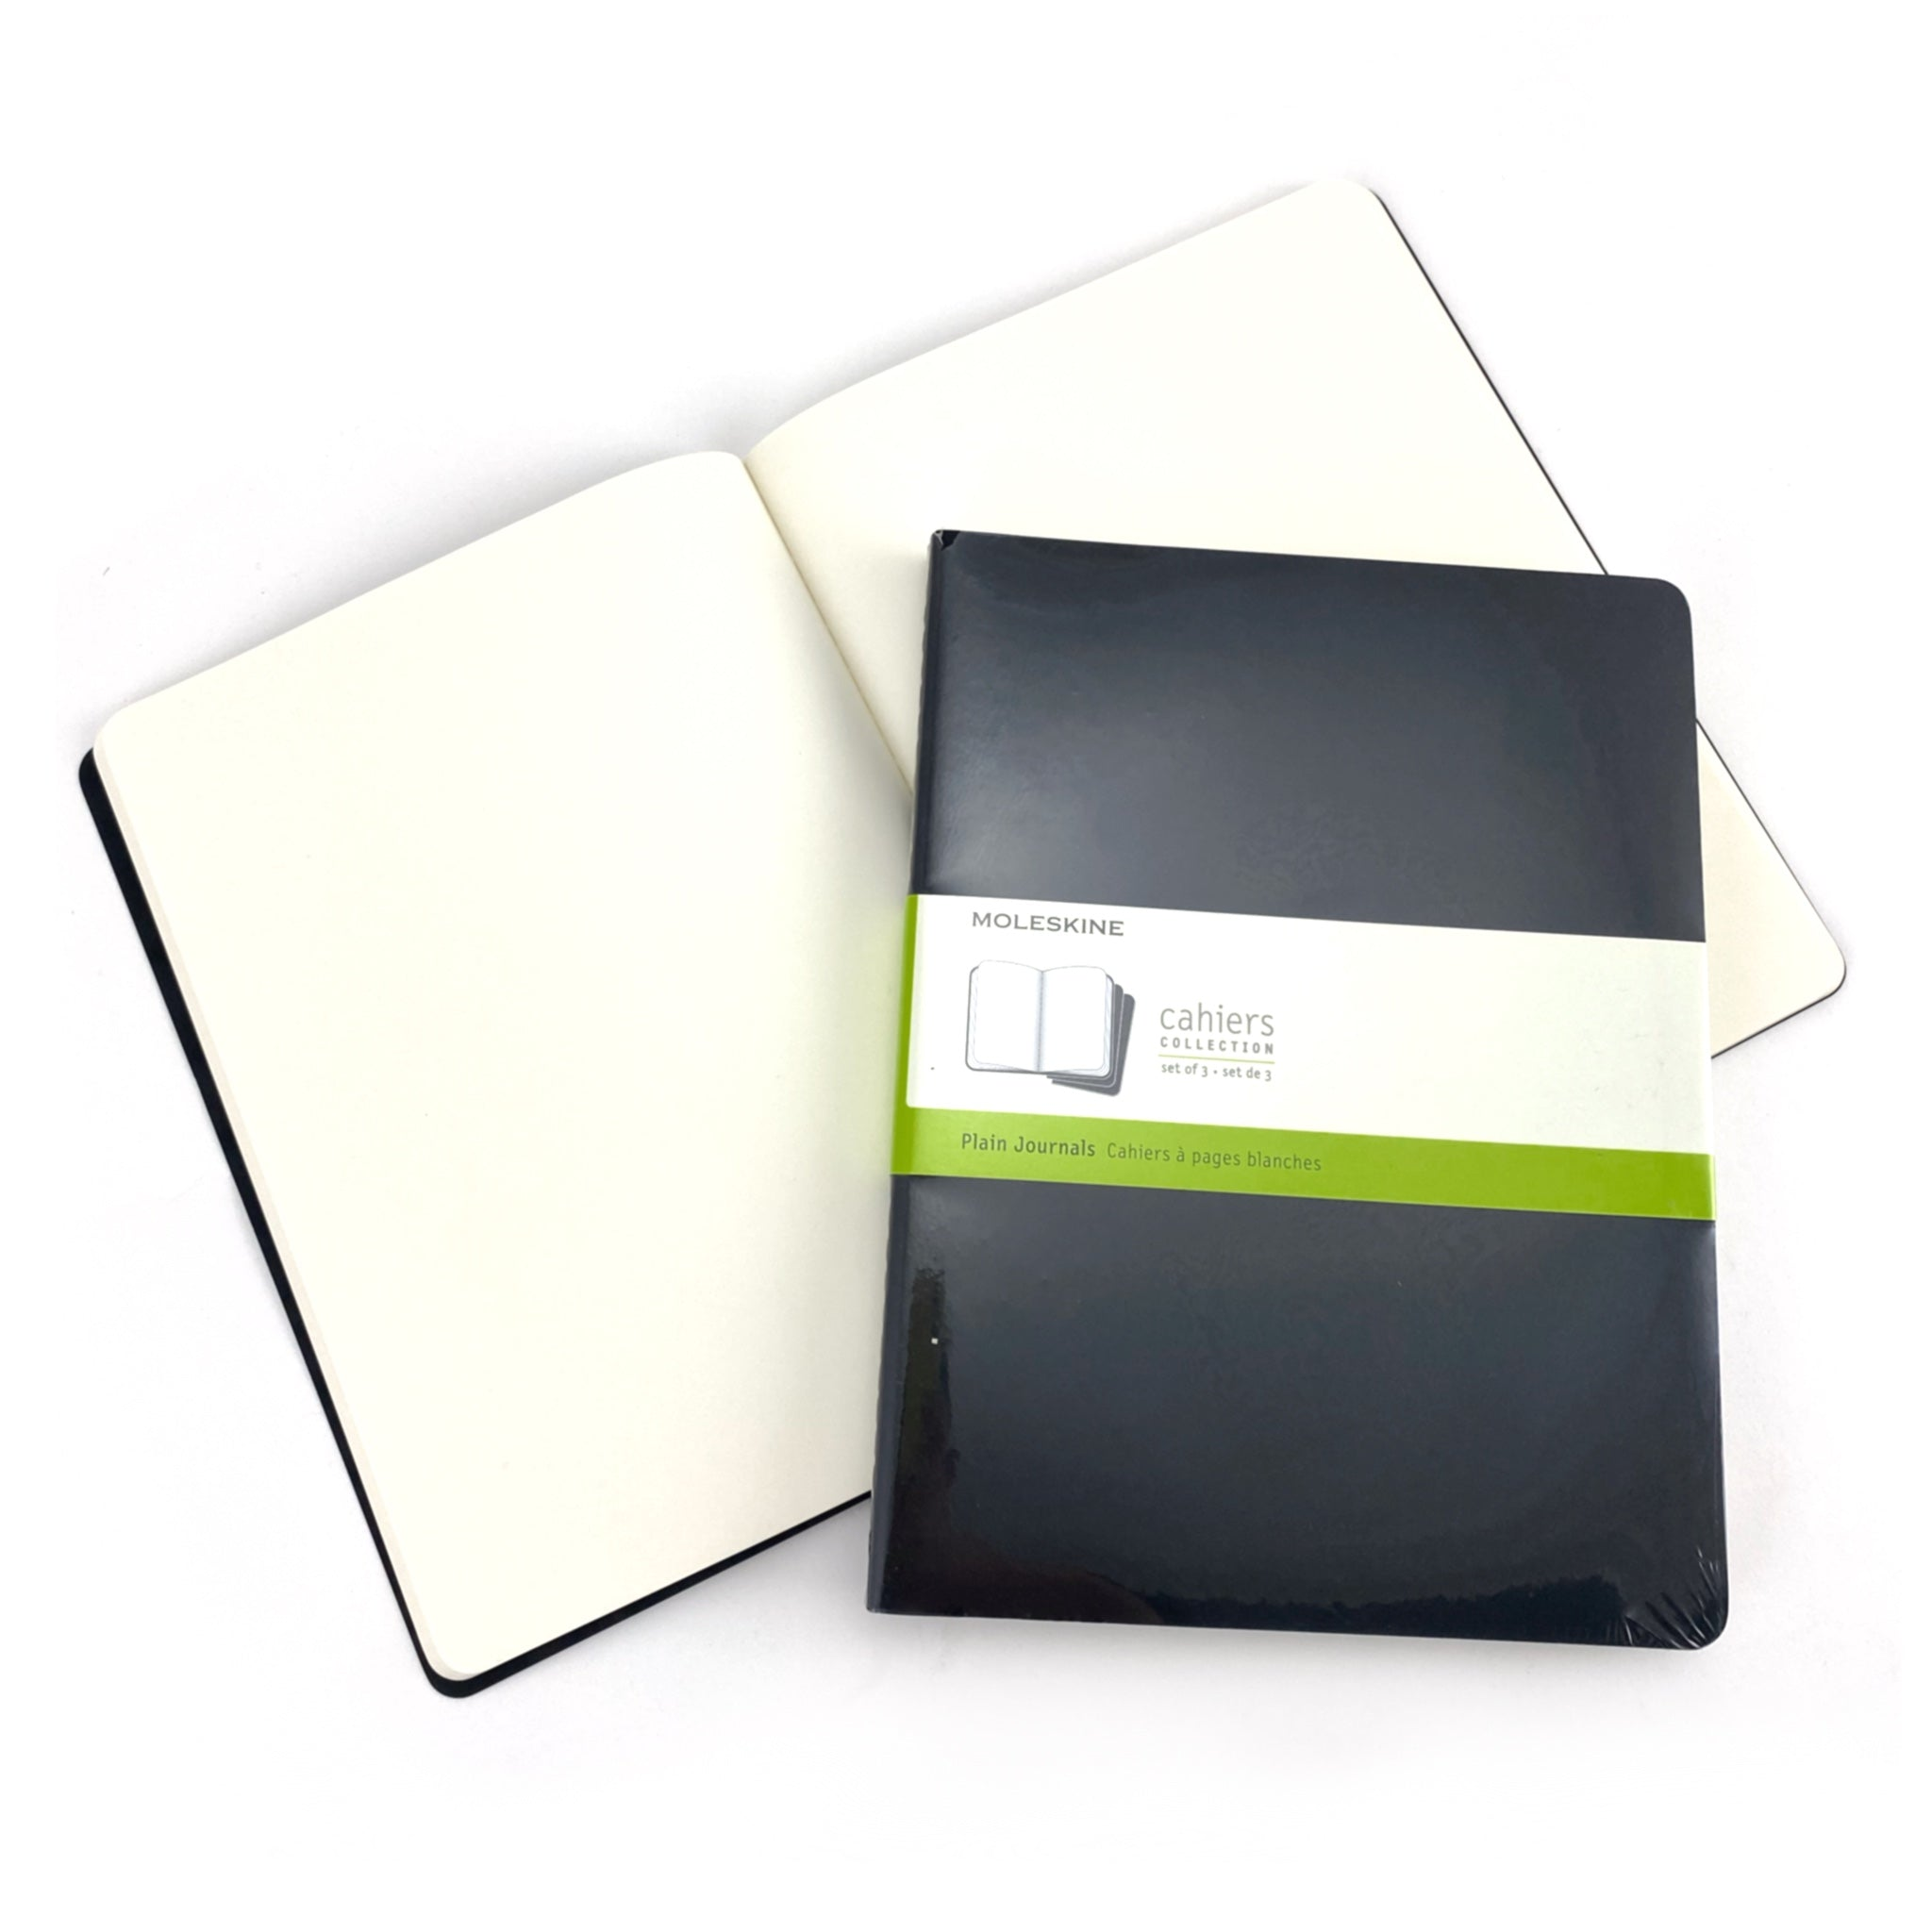 Moleskine Cahier Journals - 7.5 x 9.75 inches - Individual Notebook - Black / Plain by Moleskine - K. A. Artist Shop